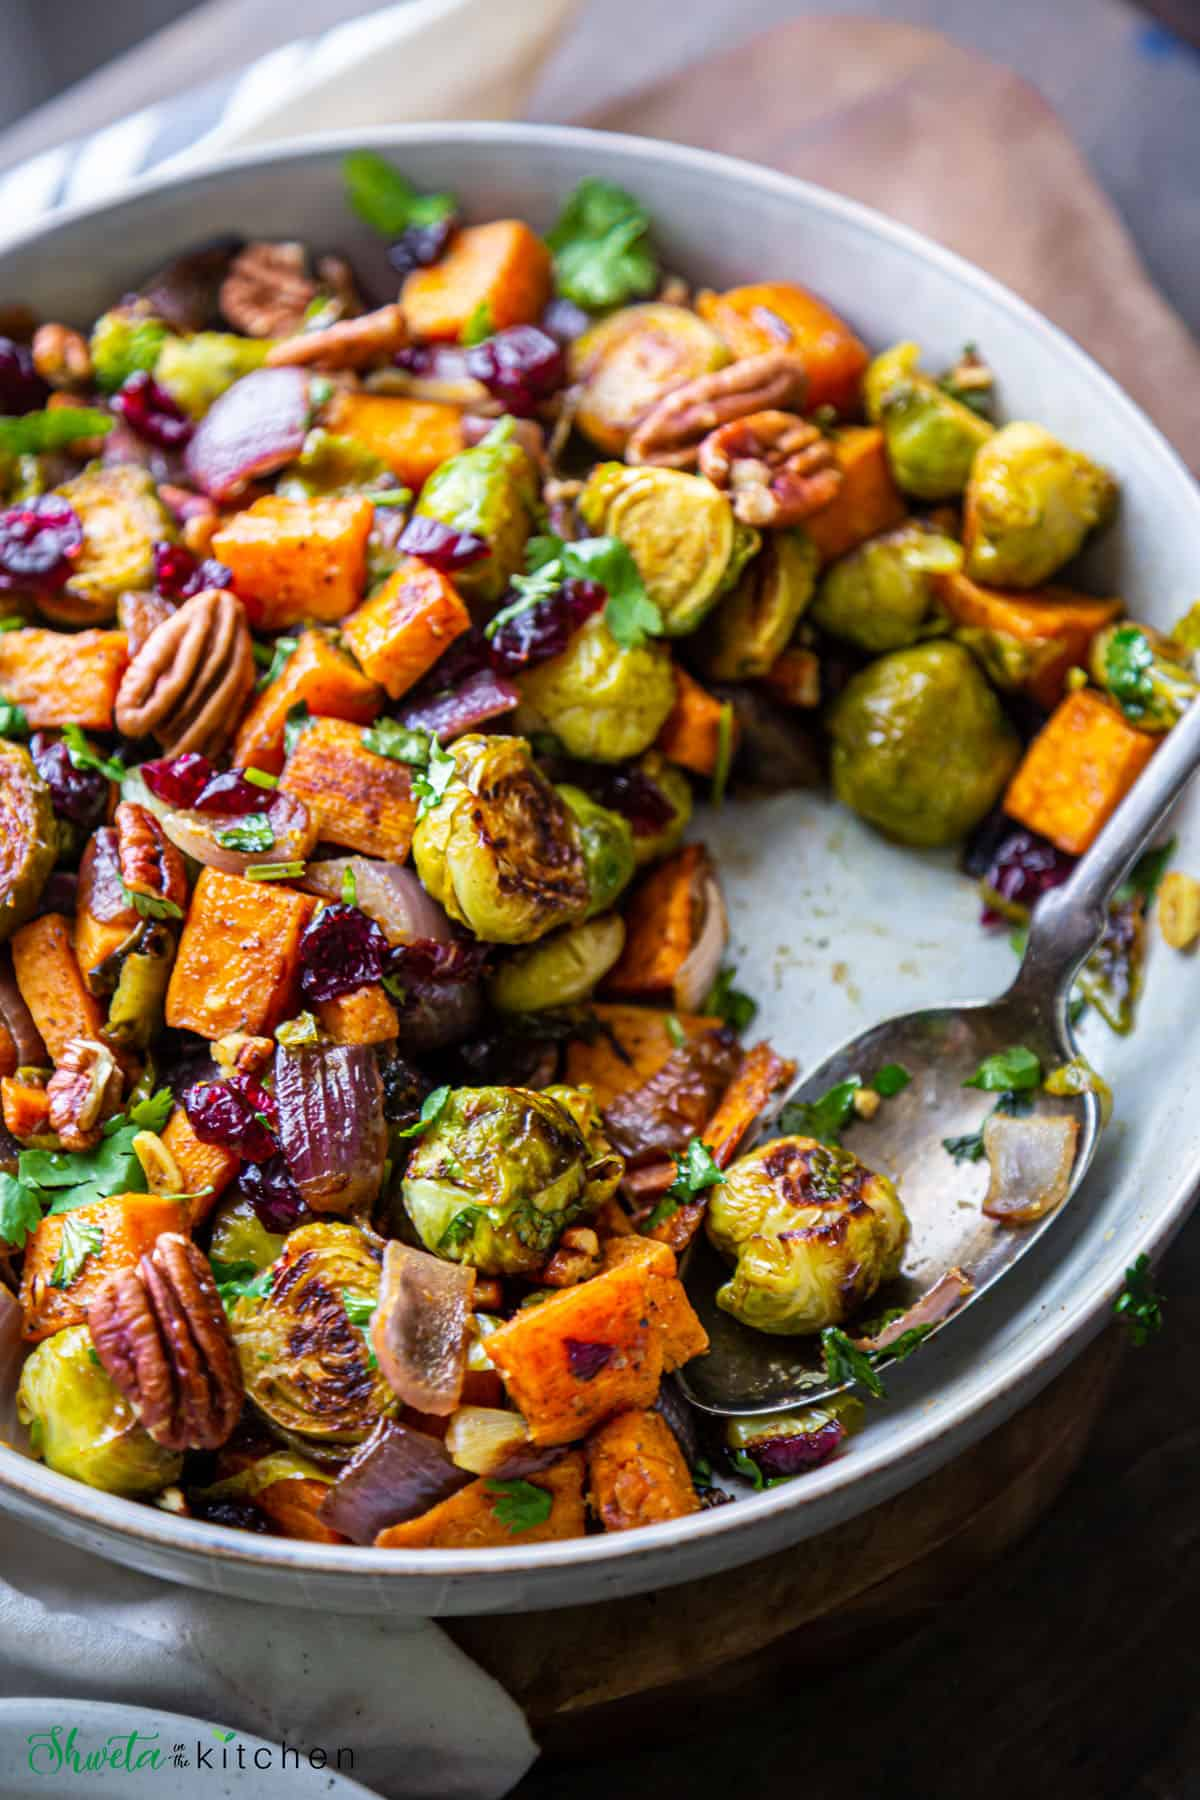 Bowl of roasted sweet potatoes and brussels sprouts with a spoon